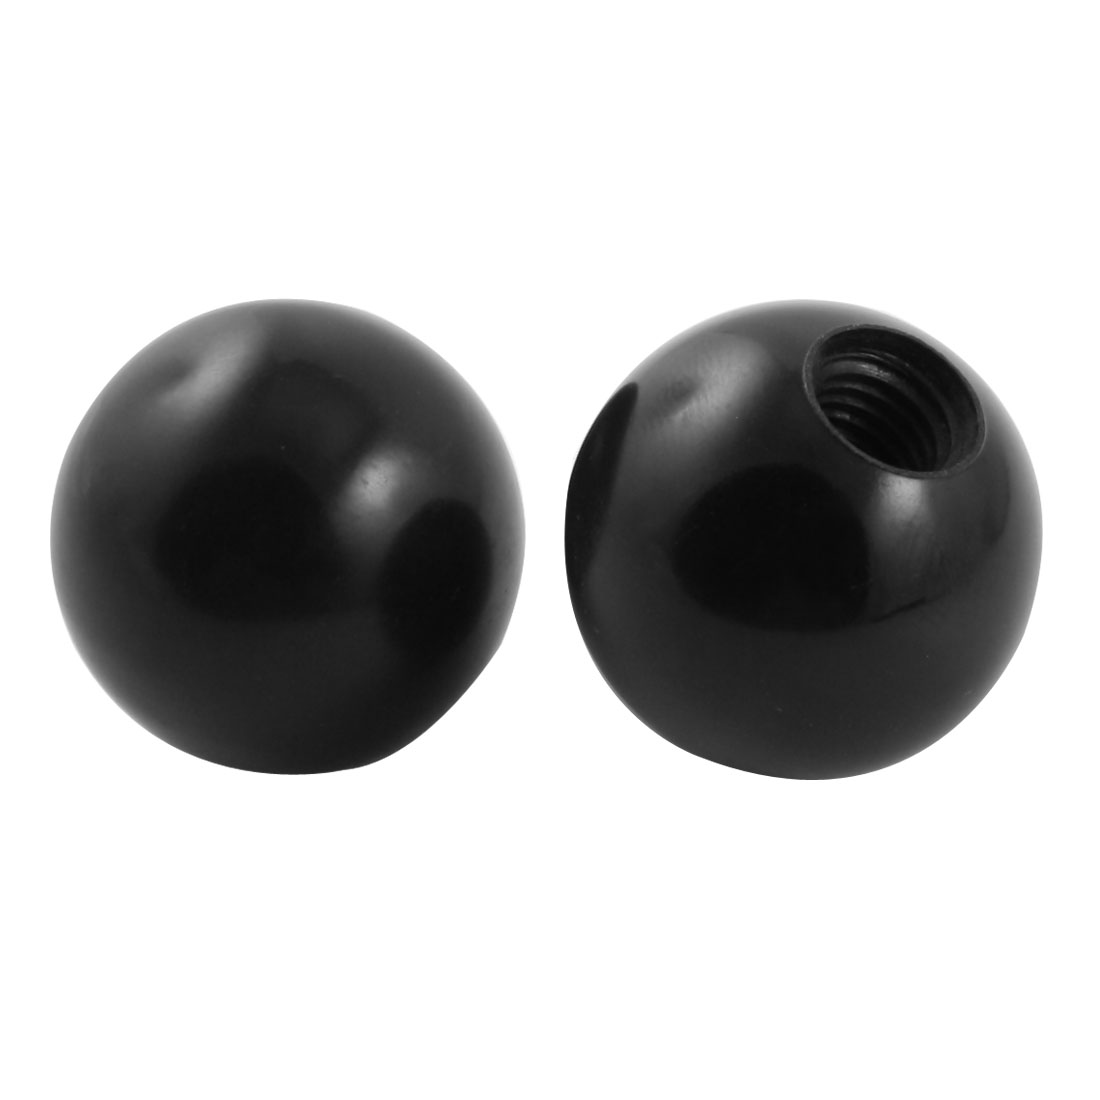 2Pcs 32mm Diameter Plastic Ball w M10 Threaded Blind Hole Handling Knob Black